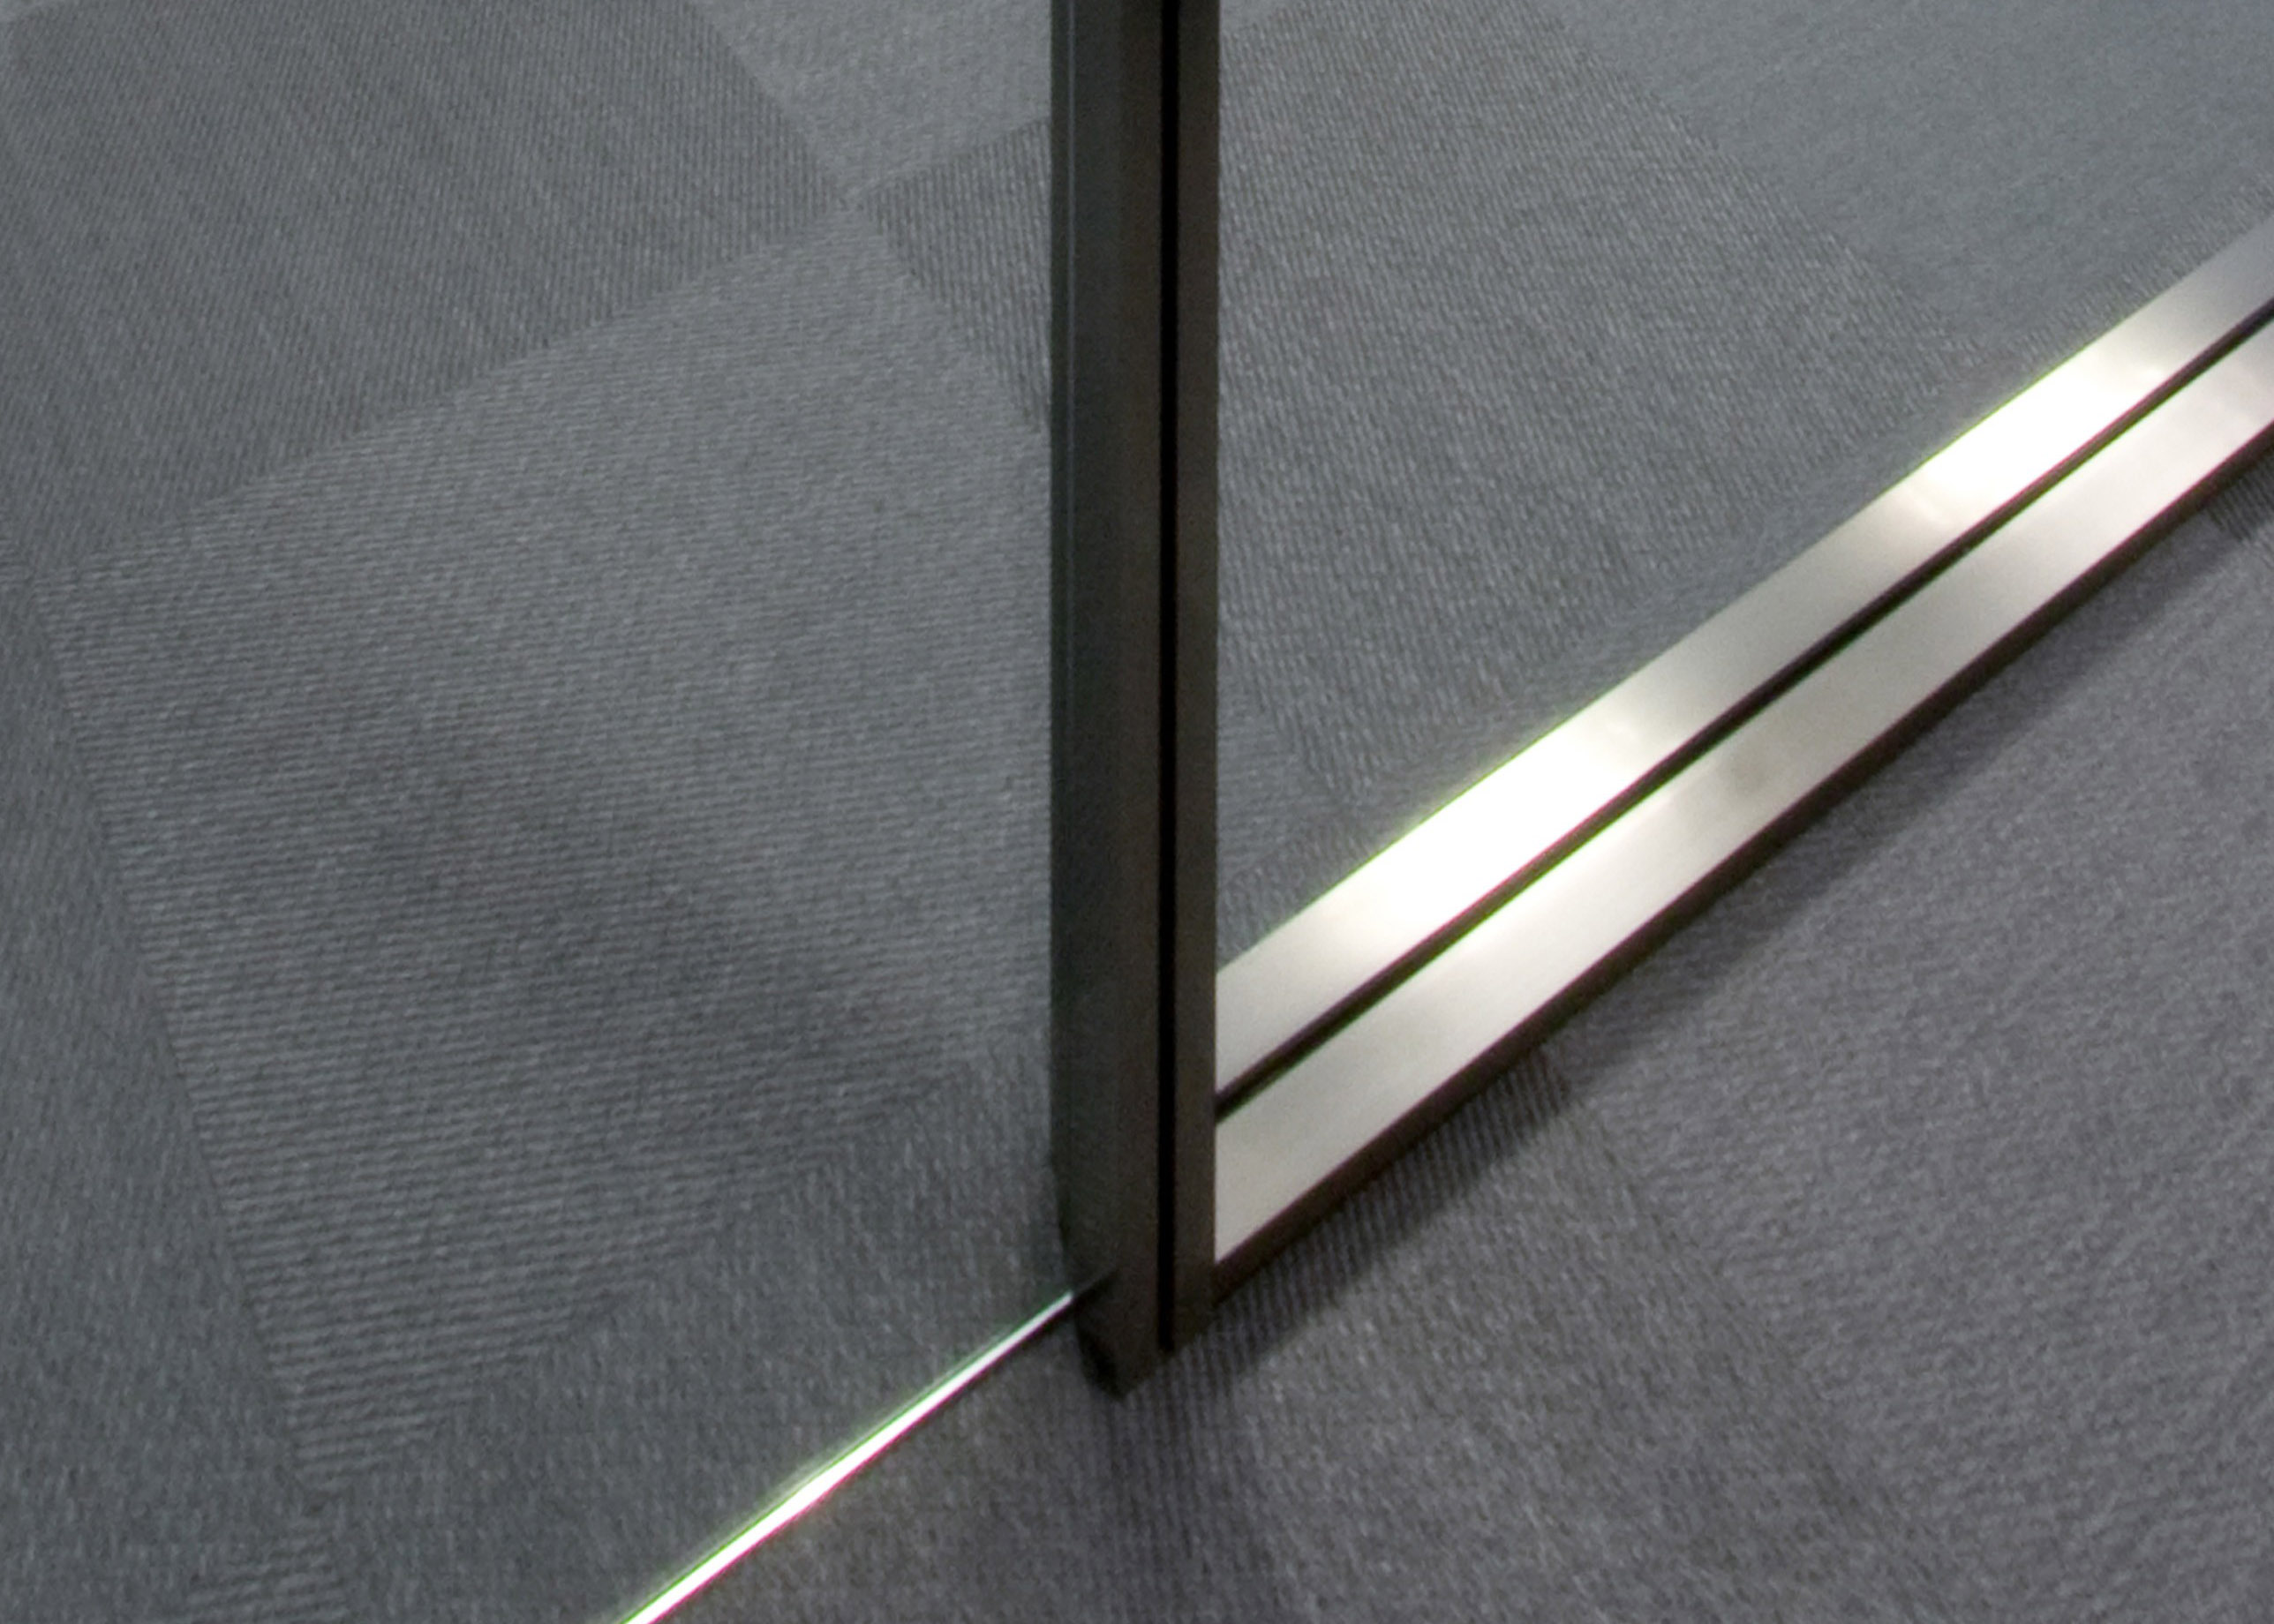 Office glass door glass wall systems glass partition walls Glass wall door systems